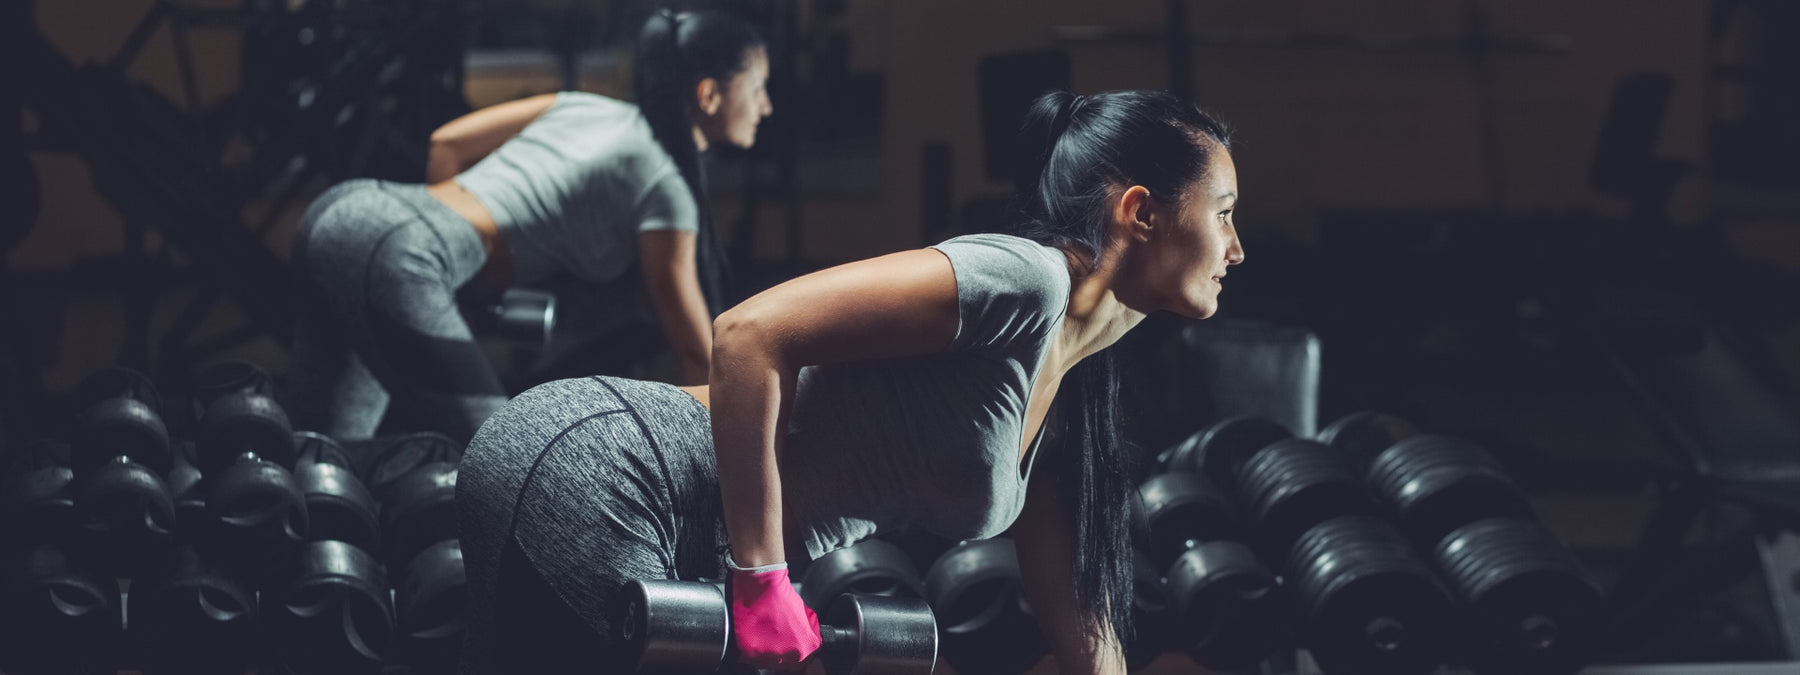 3 Strategies for Training in a Crowded Gym After New Year's